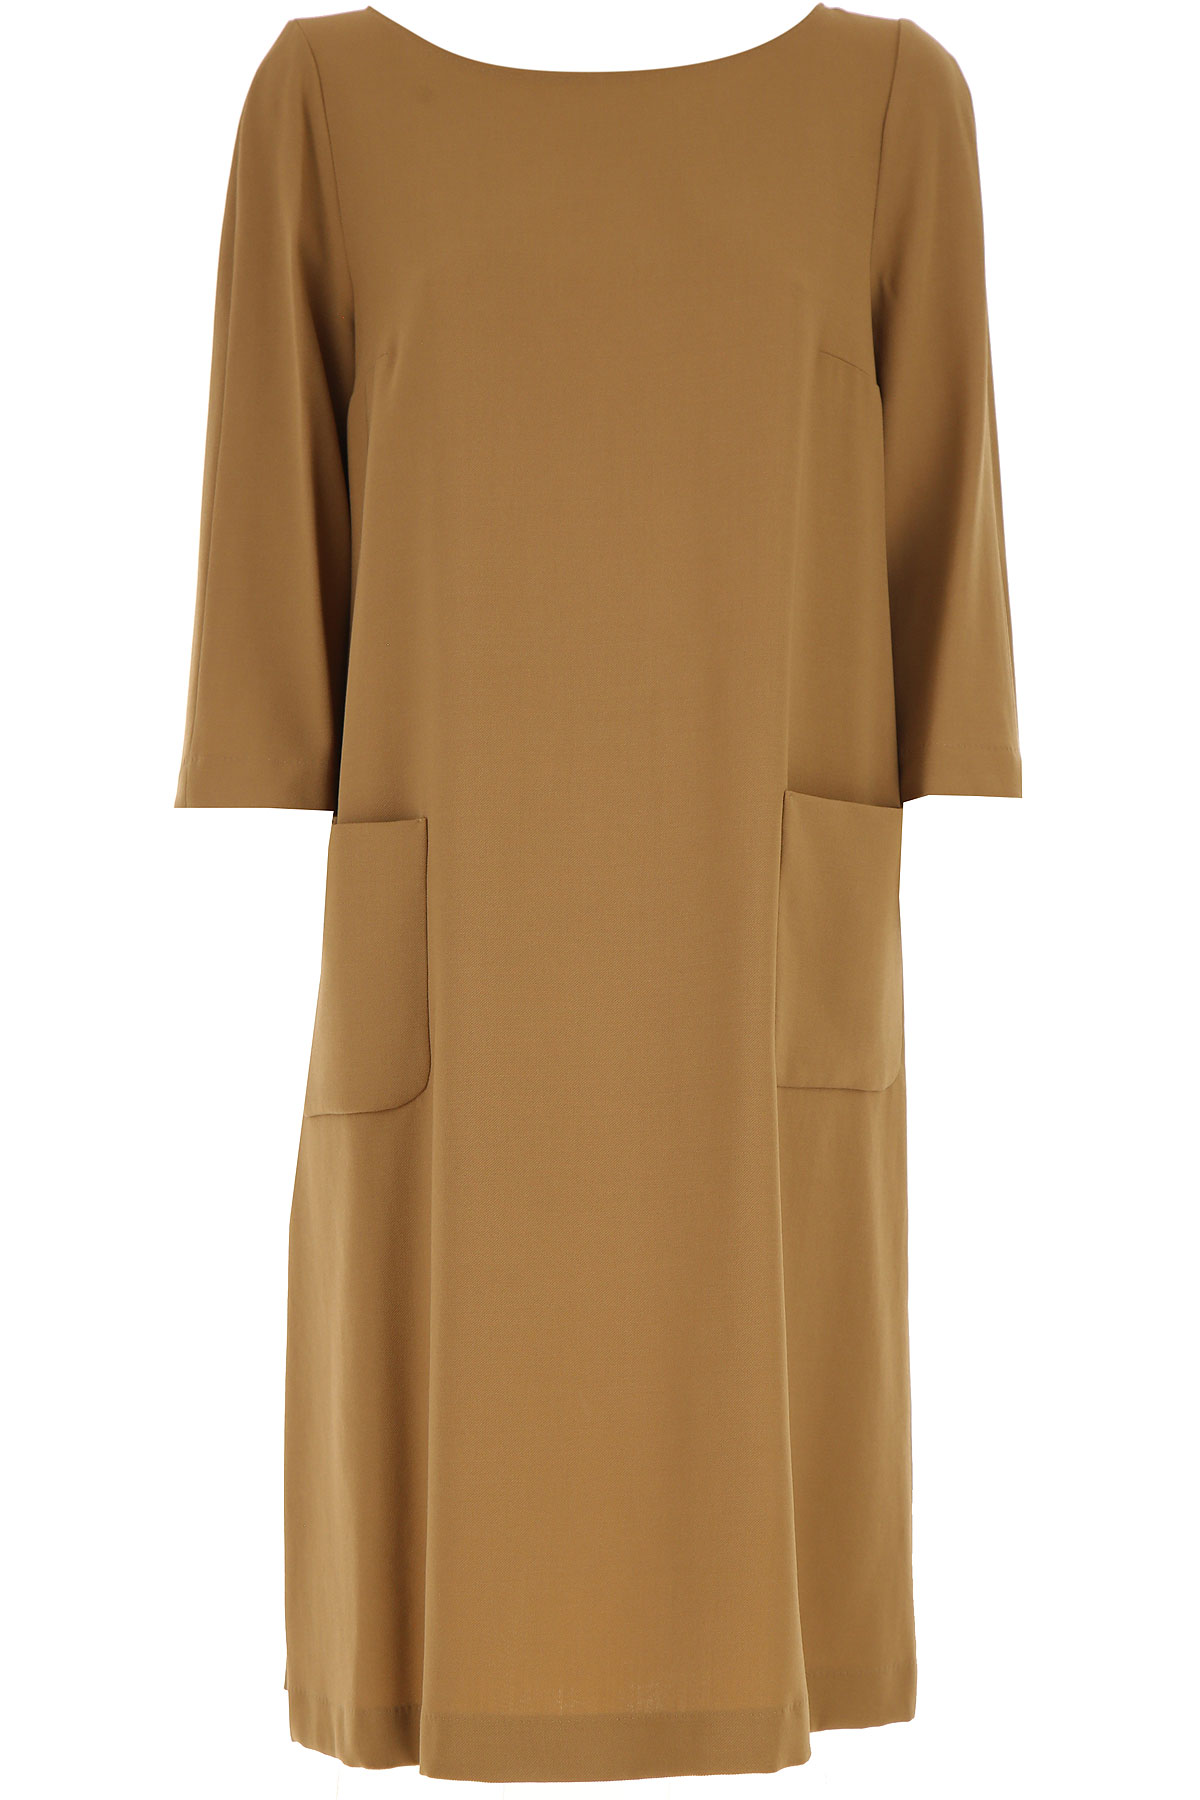 Max Mara Dress for Women, Evening Cocktail Party On Sale, Camel, Wool, 2019, 4 6